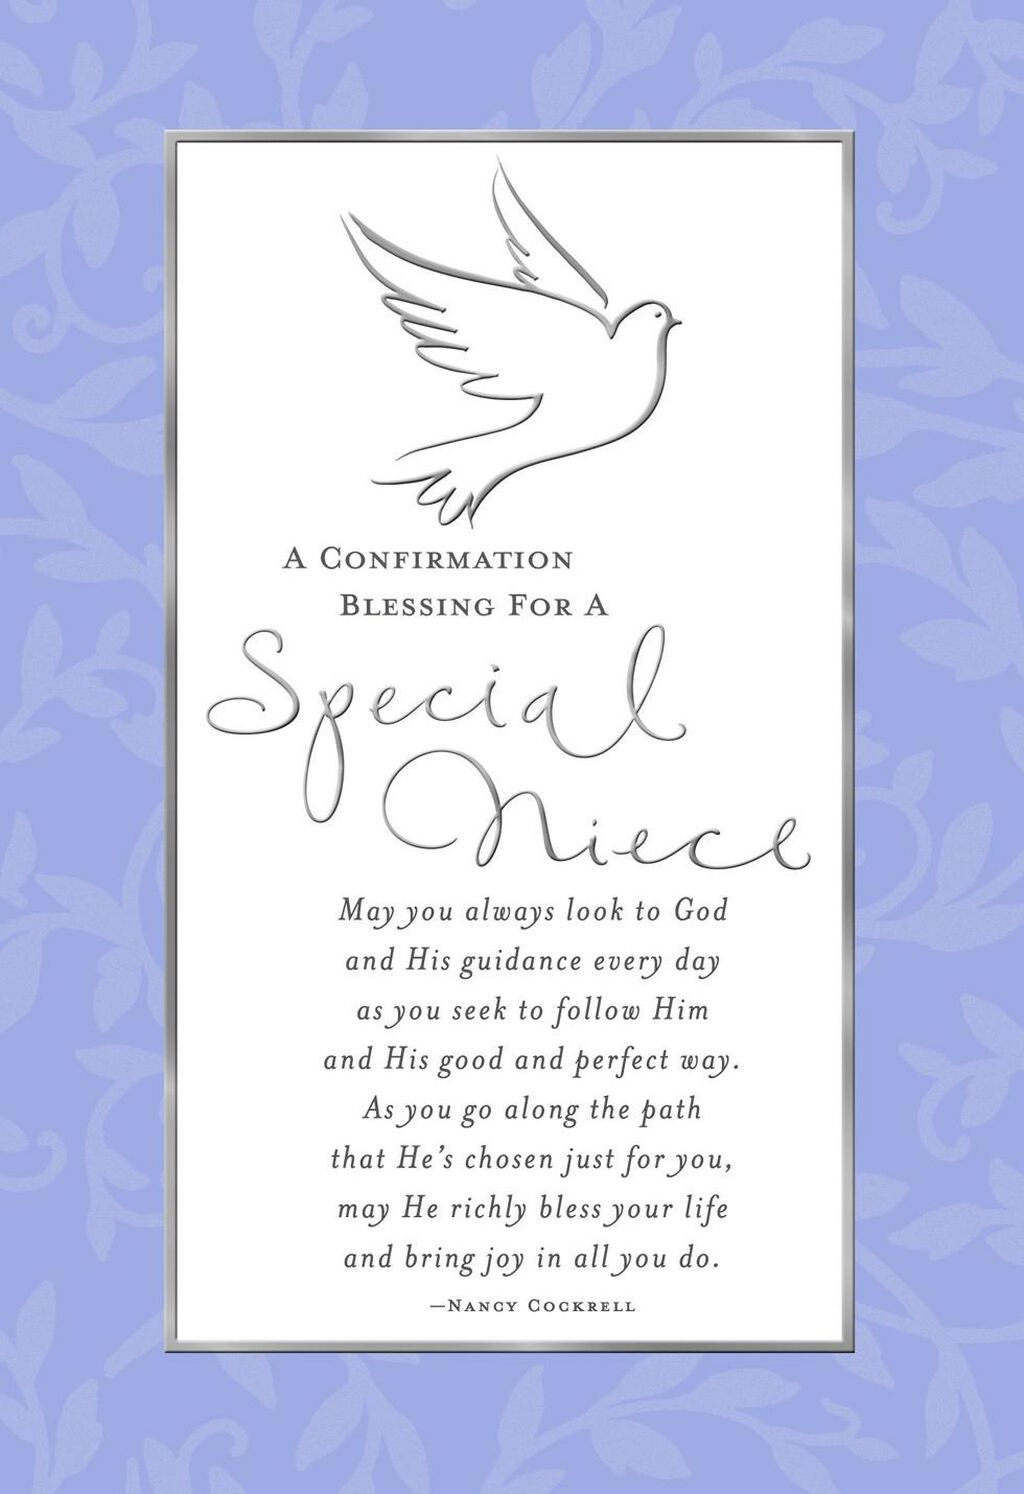 Special Thoughts for Niece Confirmation Card - Greeting Cards - Hallmark